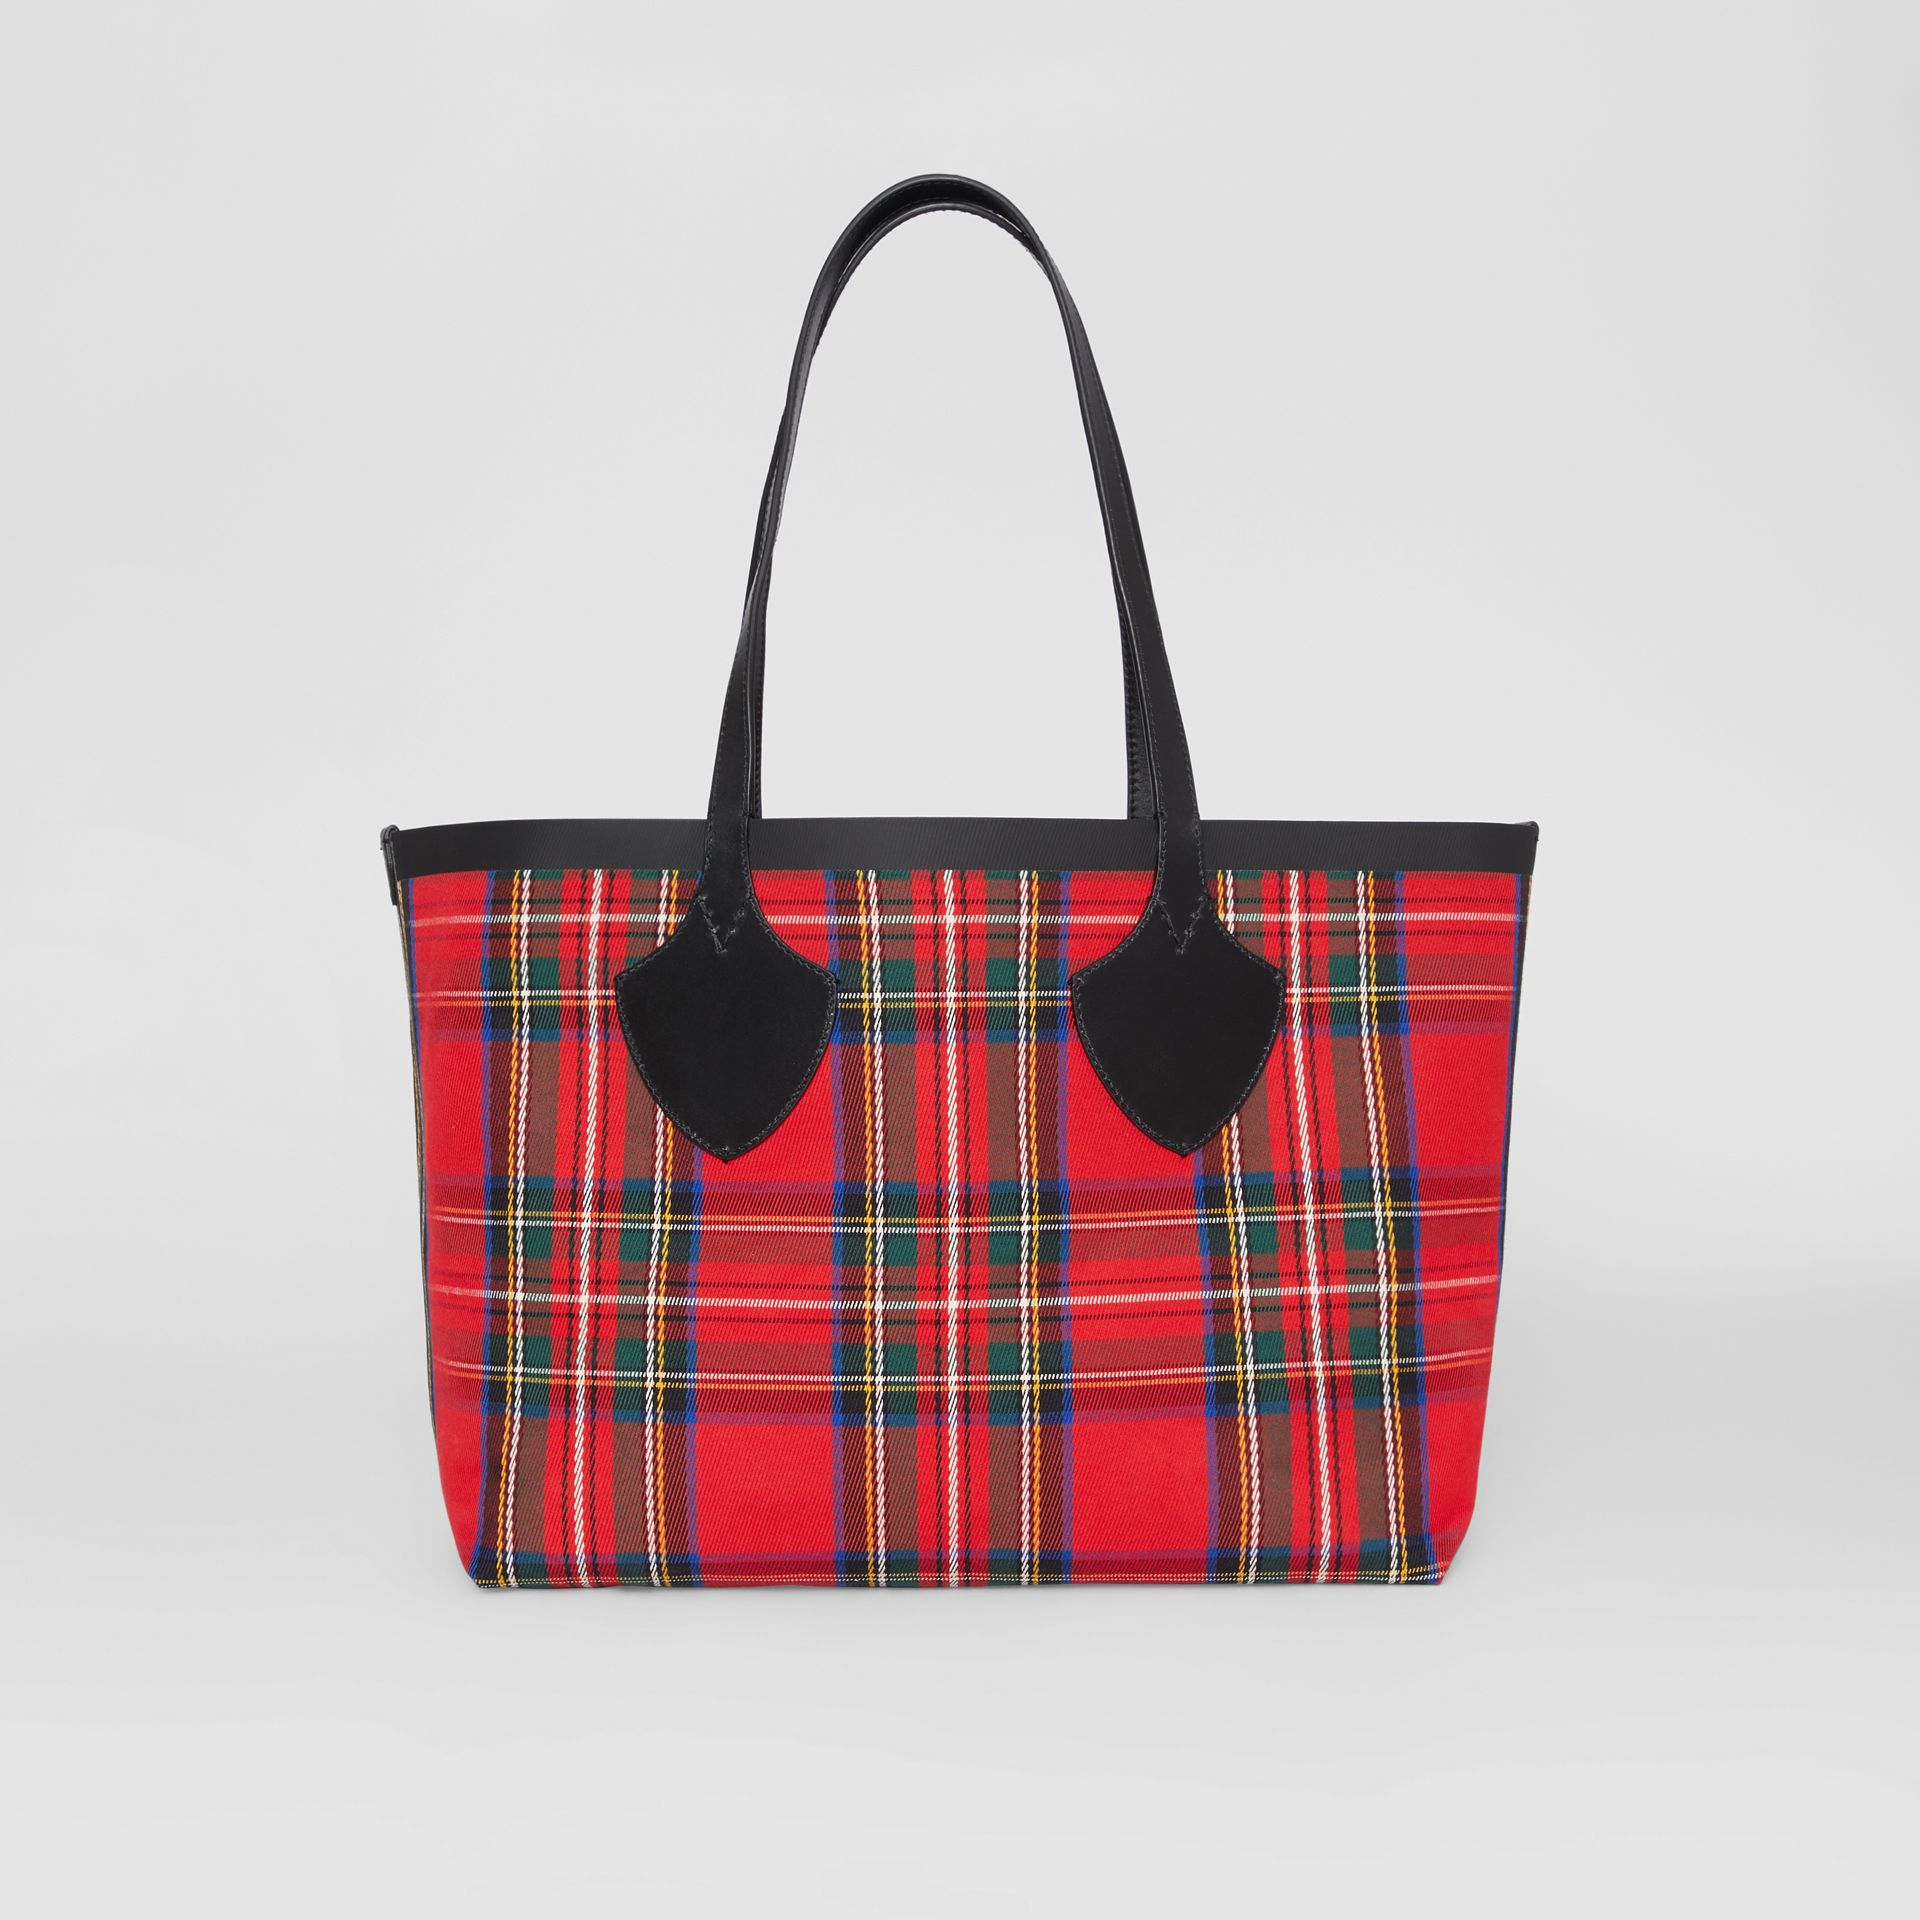 Sac tote The Giant moyen en Vintage check (Jaune Antique/rouge Vif) | Burberry Canada - photo de la galerie 8